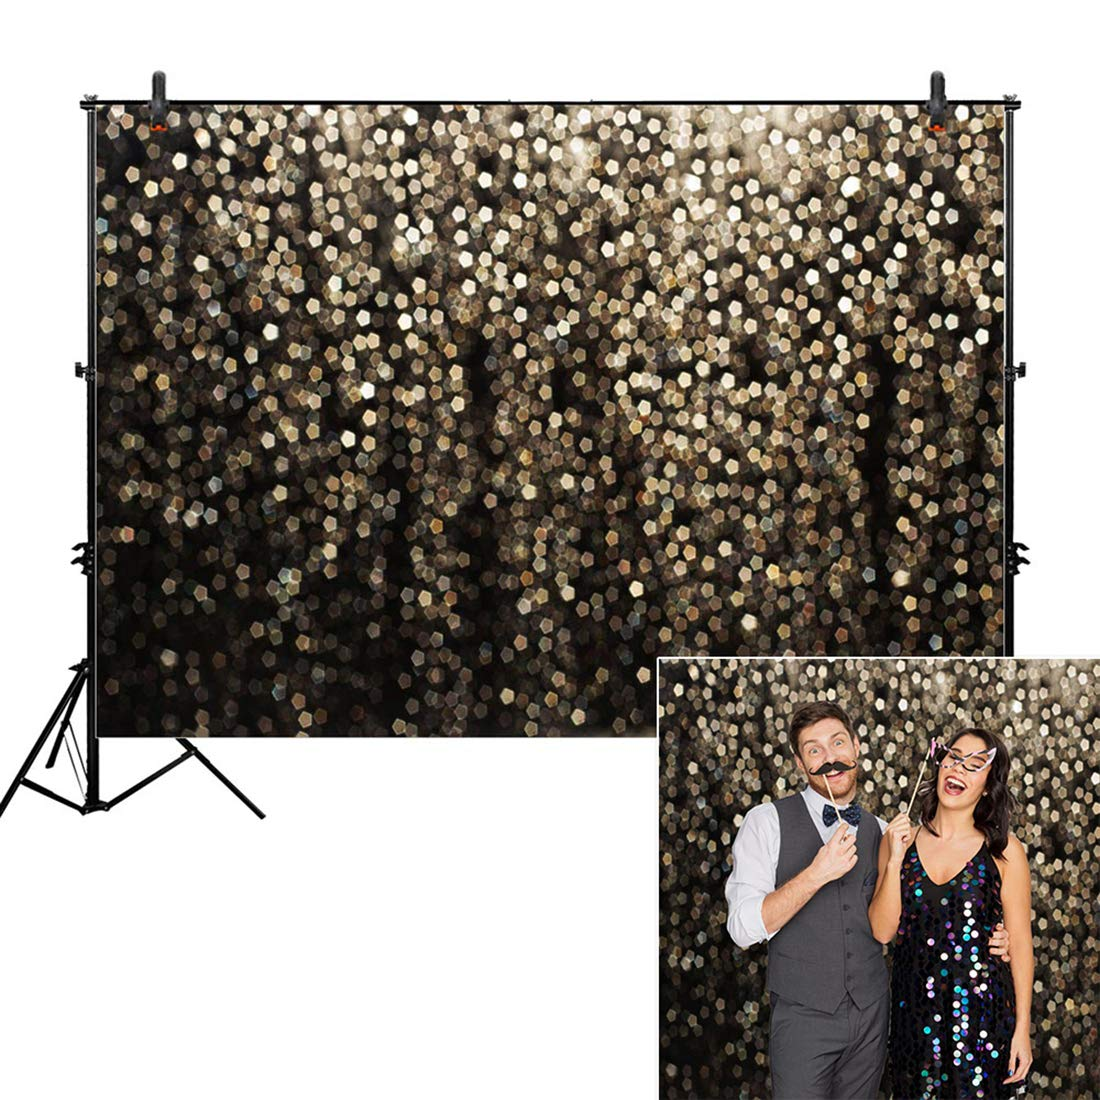 Allenjoy 7x5ft Gold Bokeh Spots Backdrop for Selfie Birthday Party Pictures Photo Booth Shoot Graduation Prom Dance Decor Wedding Vintage Astract Glitter Dot Studio Props Photography Background by Allenjoy (Image #1)